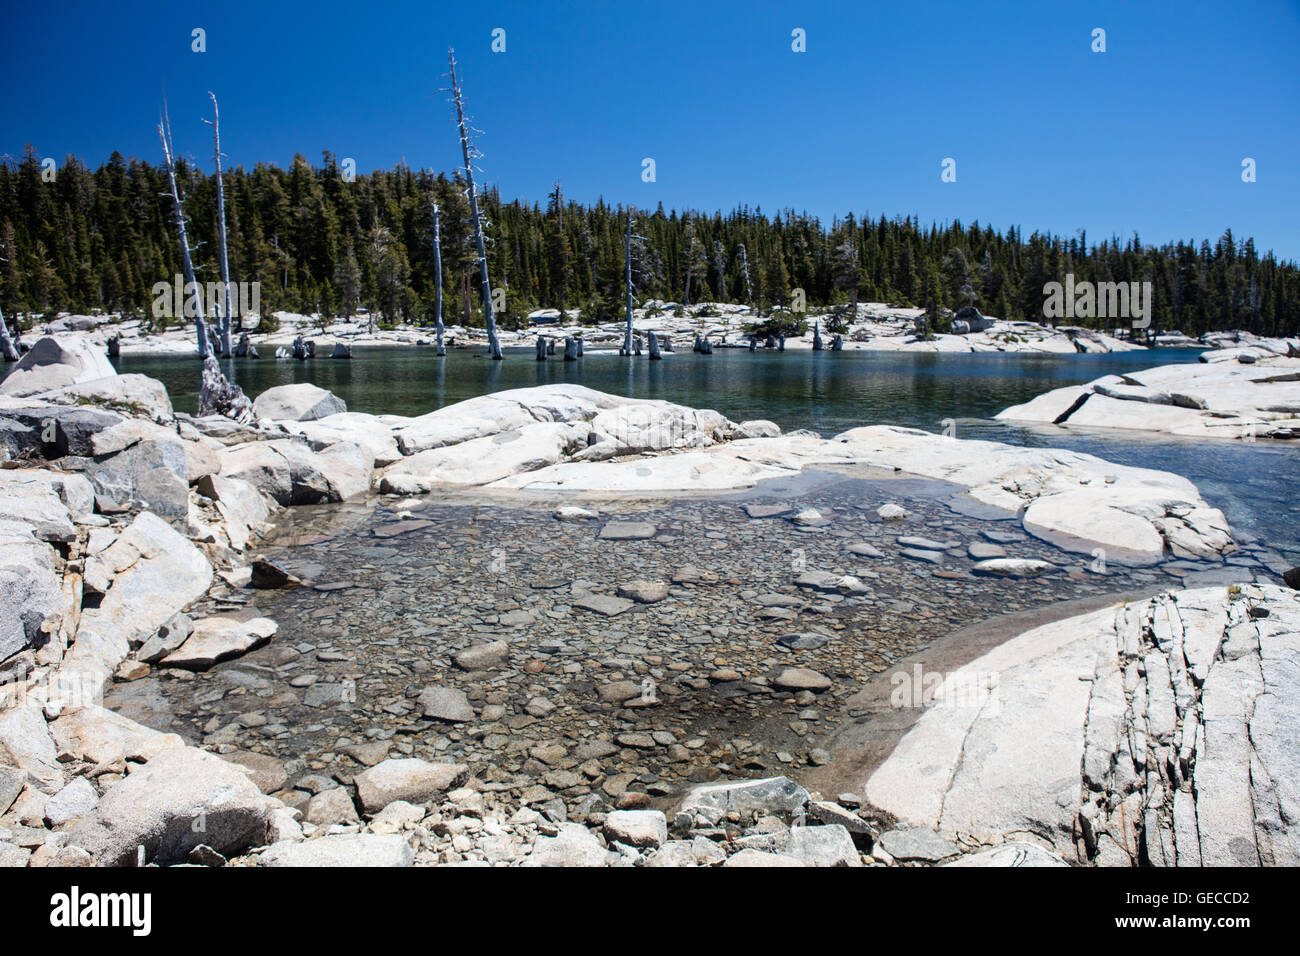 Freshwater fills a shallow glacial basin in the Desolation Wilderness. This area of the Sierra Nevada mountains - Stock Image